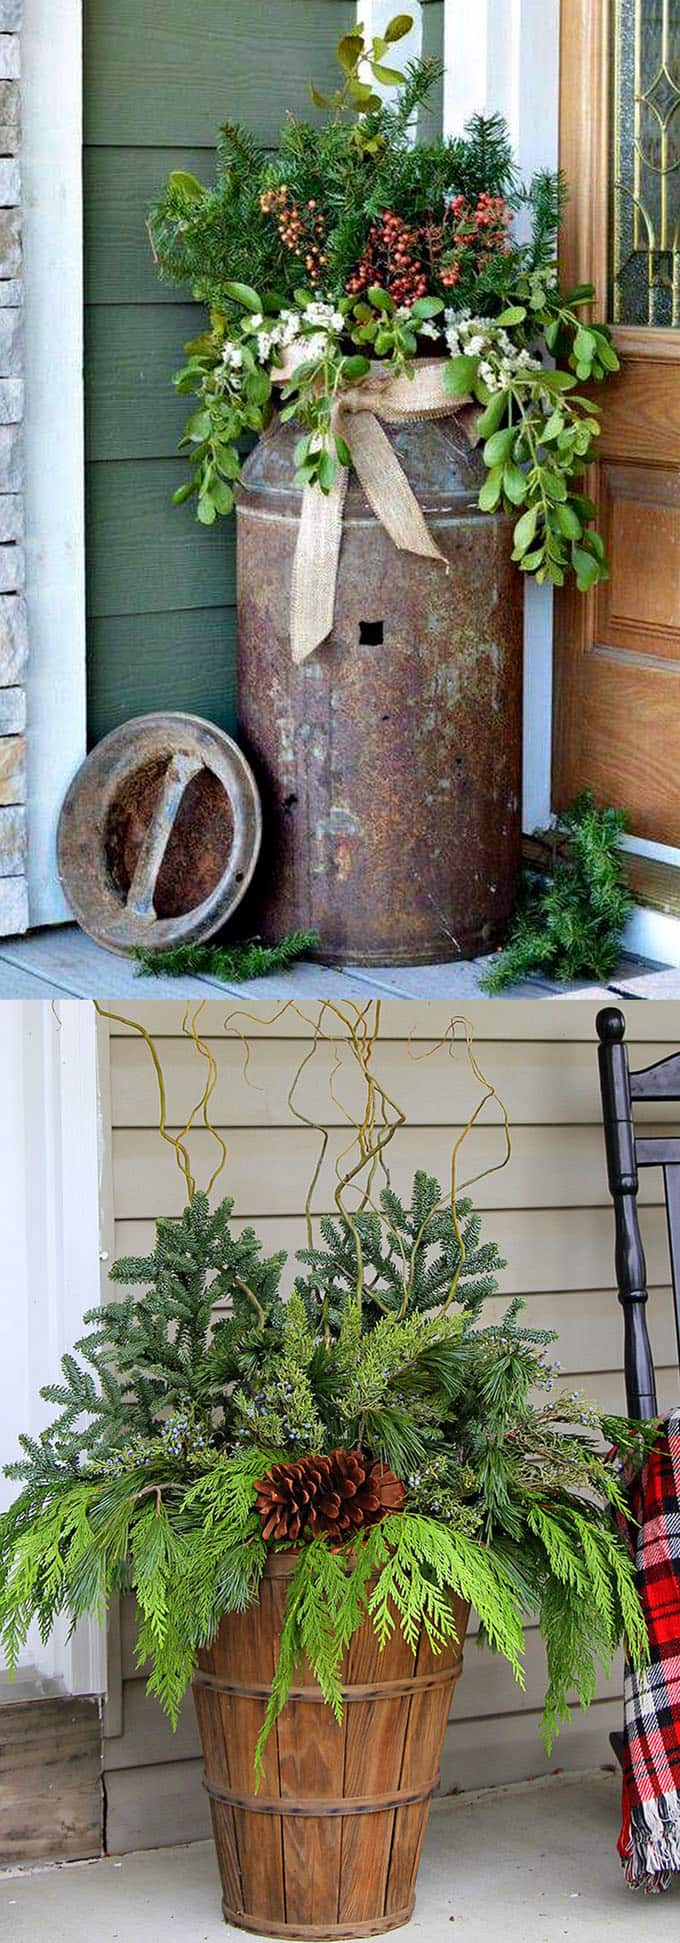 24 Stunning Christmas pots and planters to DIY for almost free! How to create colorful